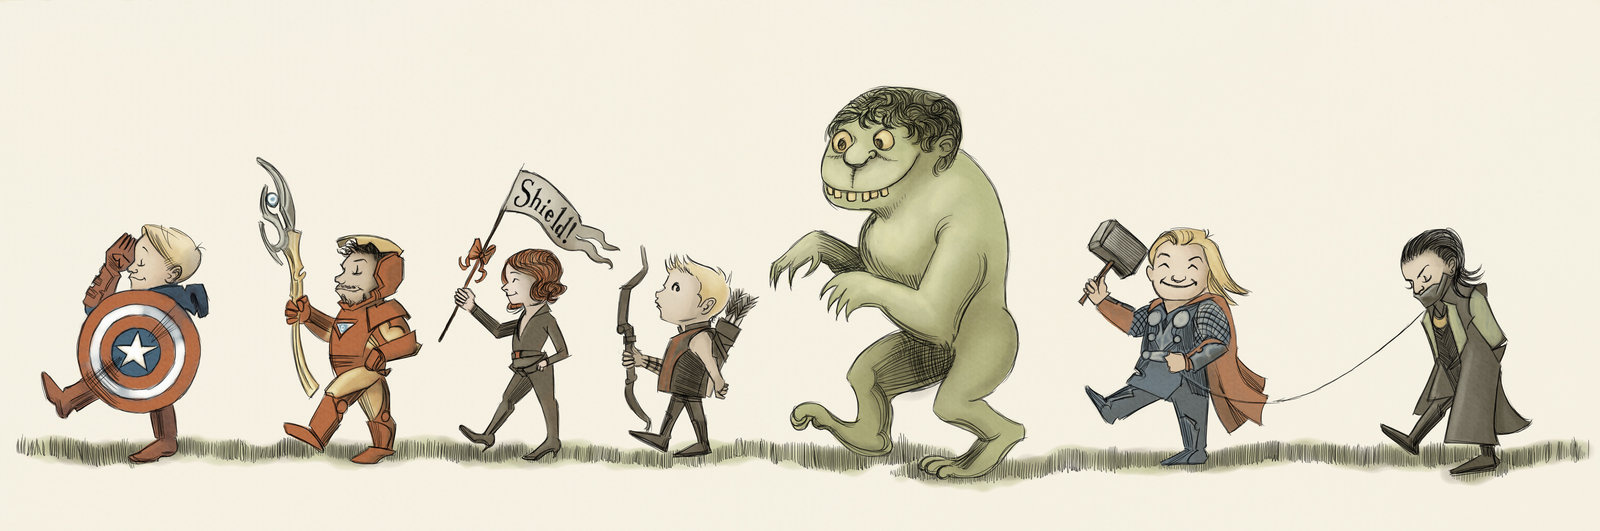 The Avengers, in style of Maurice Sendak